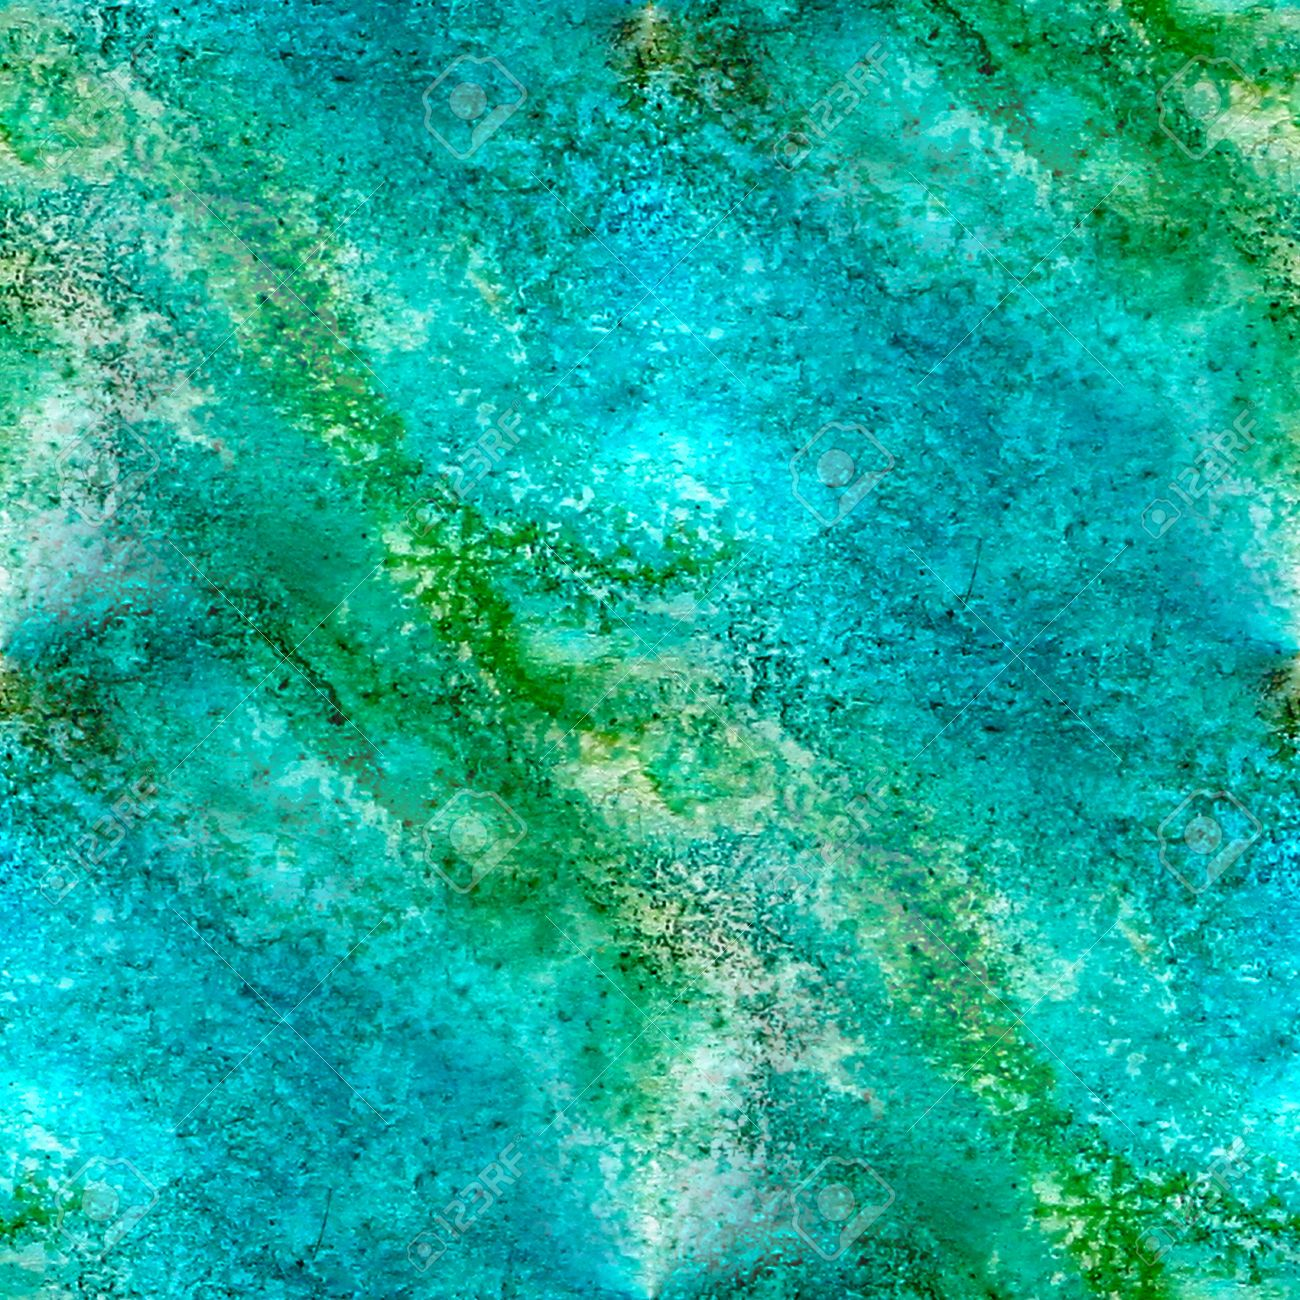 Abstract Watercolor And Blue Green Art Seamless Texture Hand